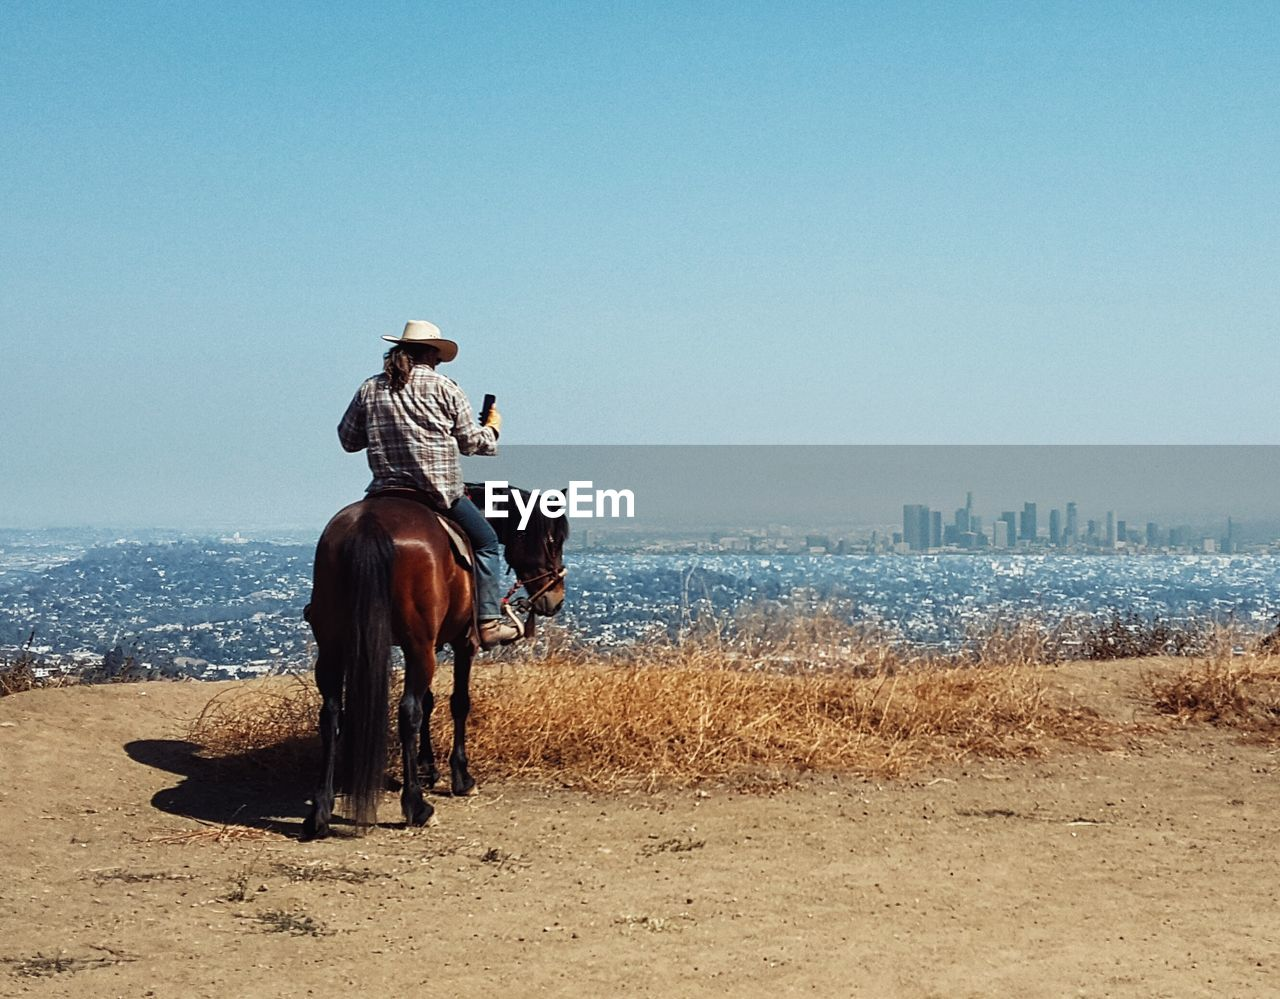 Rear View Of Cowboy Sitting On Horse Against Clear Sky